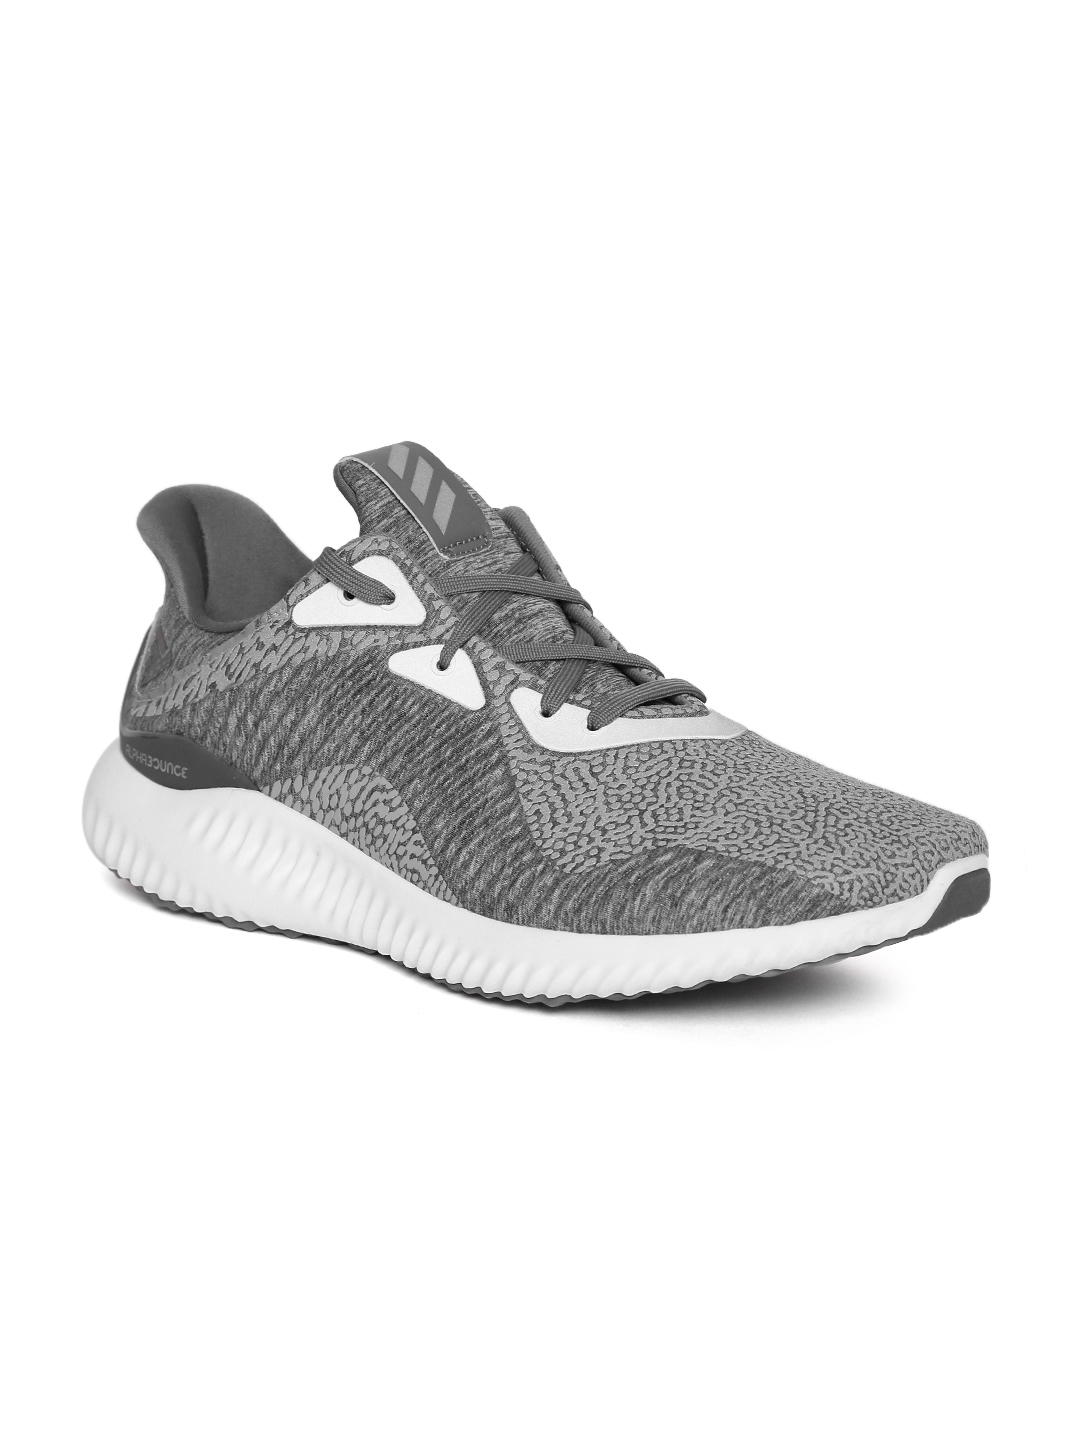 7a78a727c Buy ADIDAS Men Grey Alphabounce Haptic Print AMS Flock Print Running ...